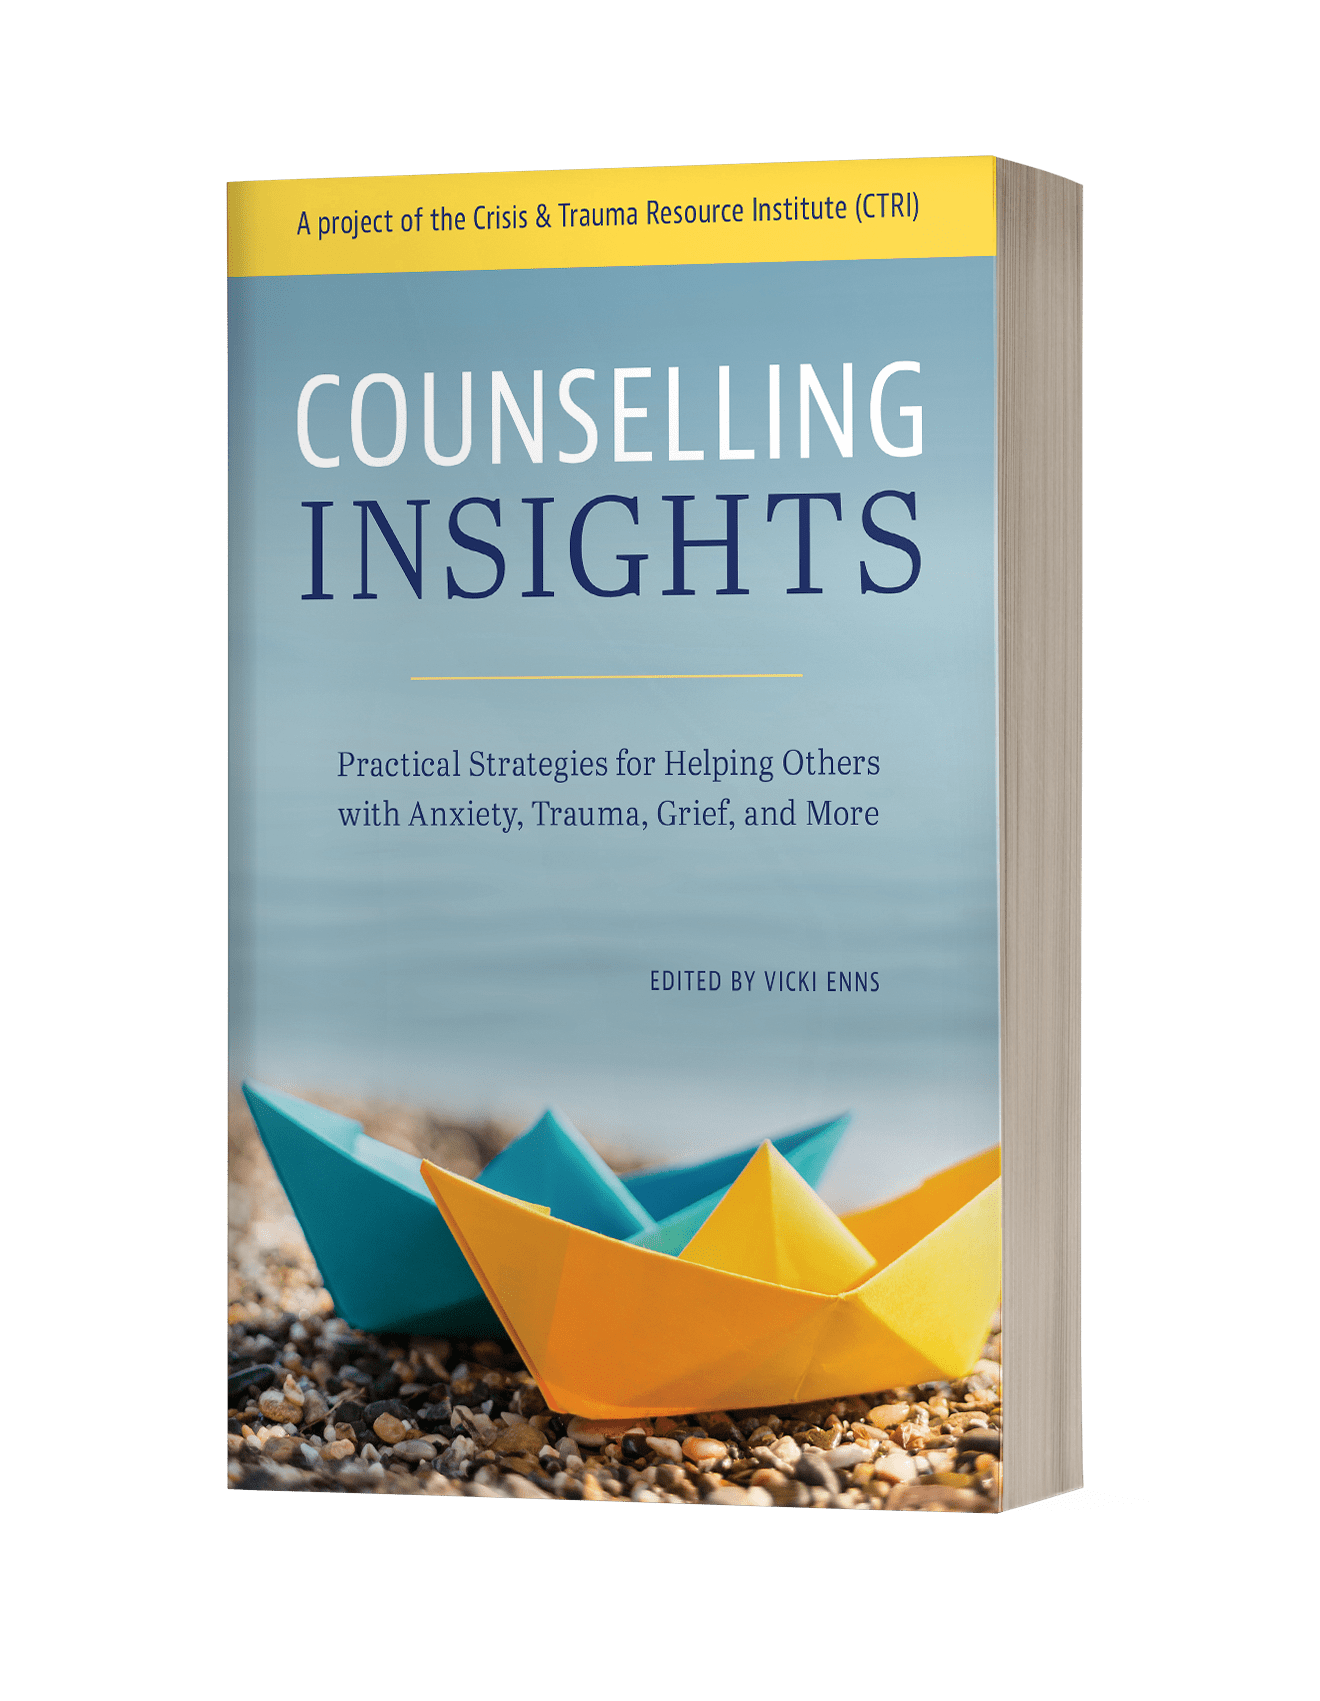 counselling insights book